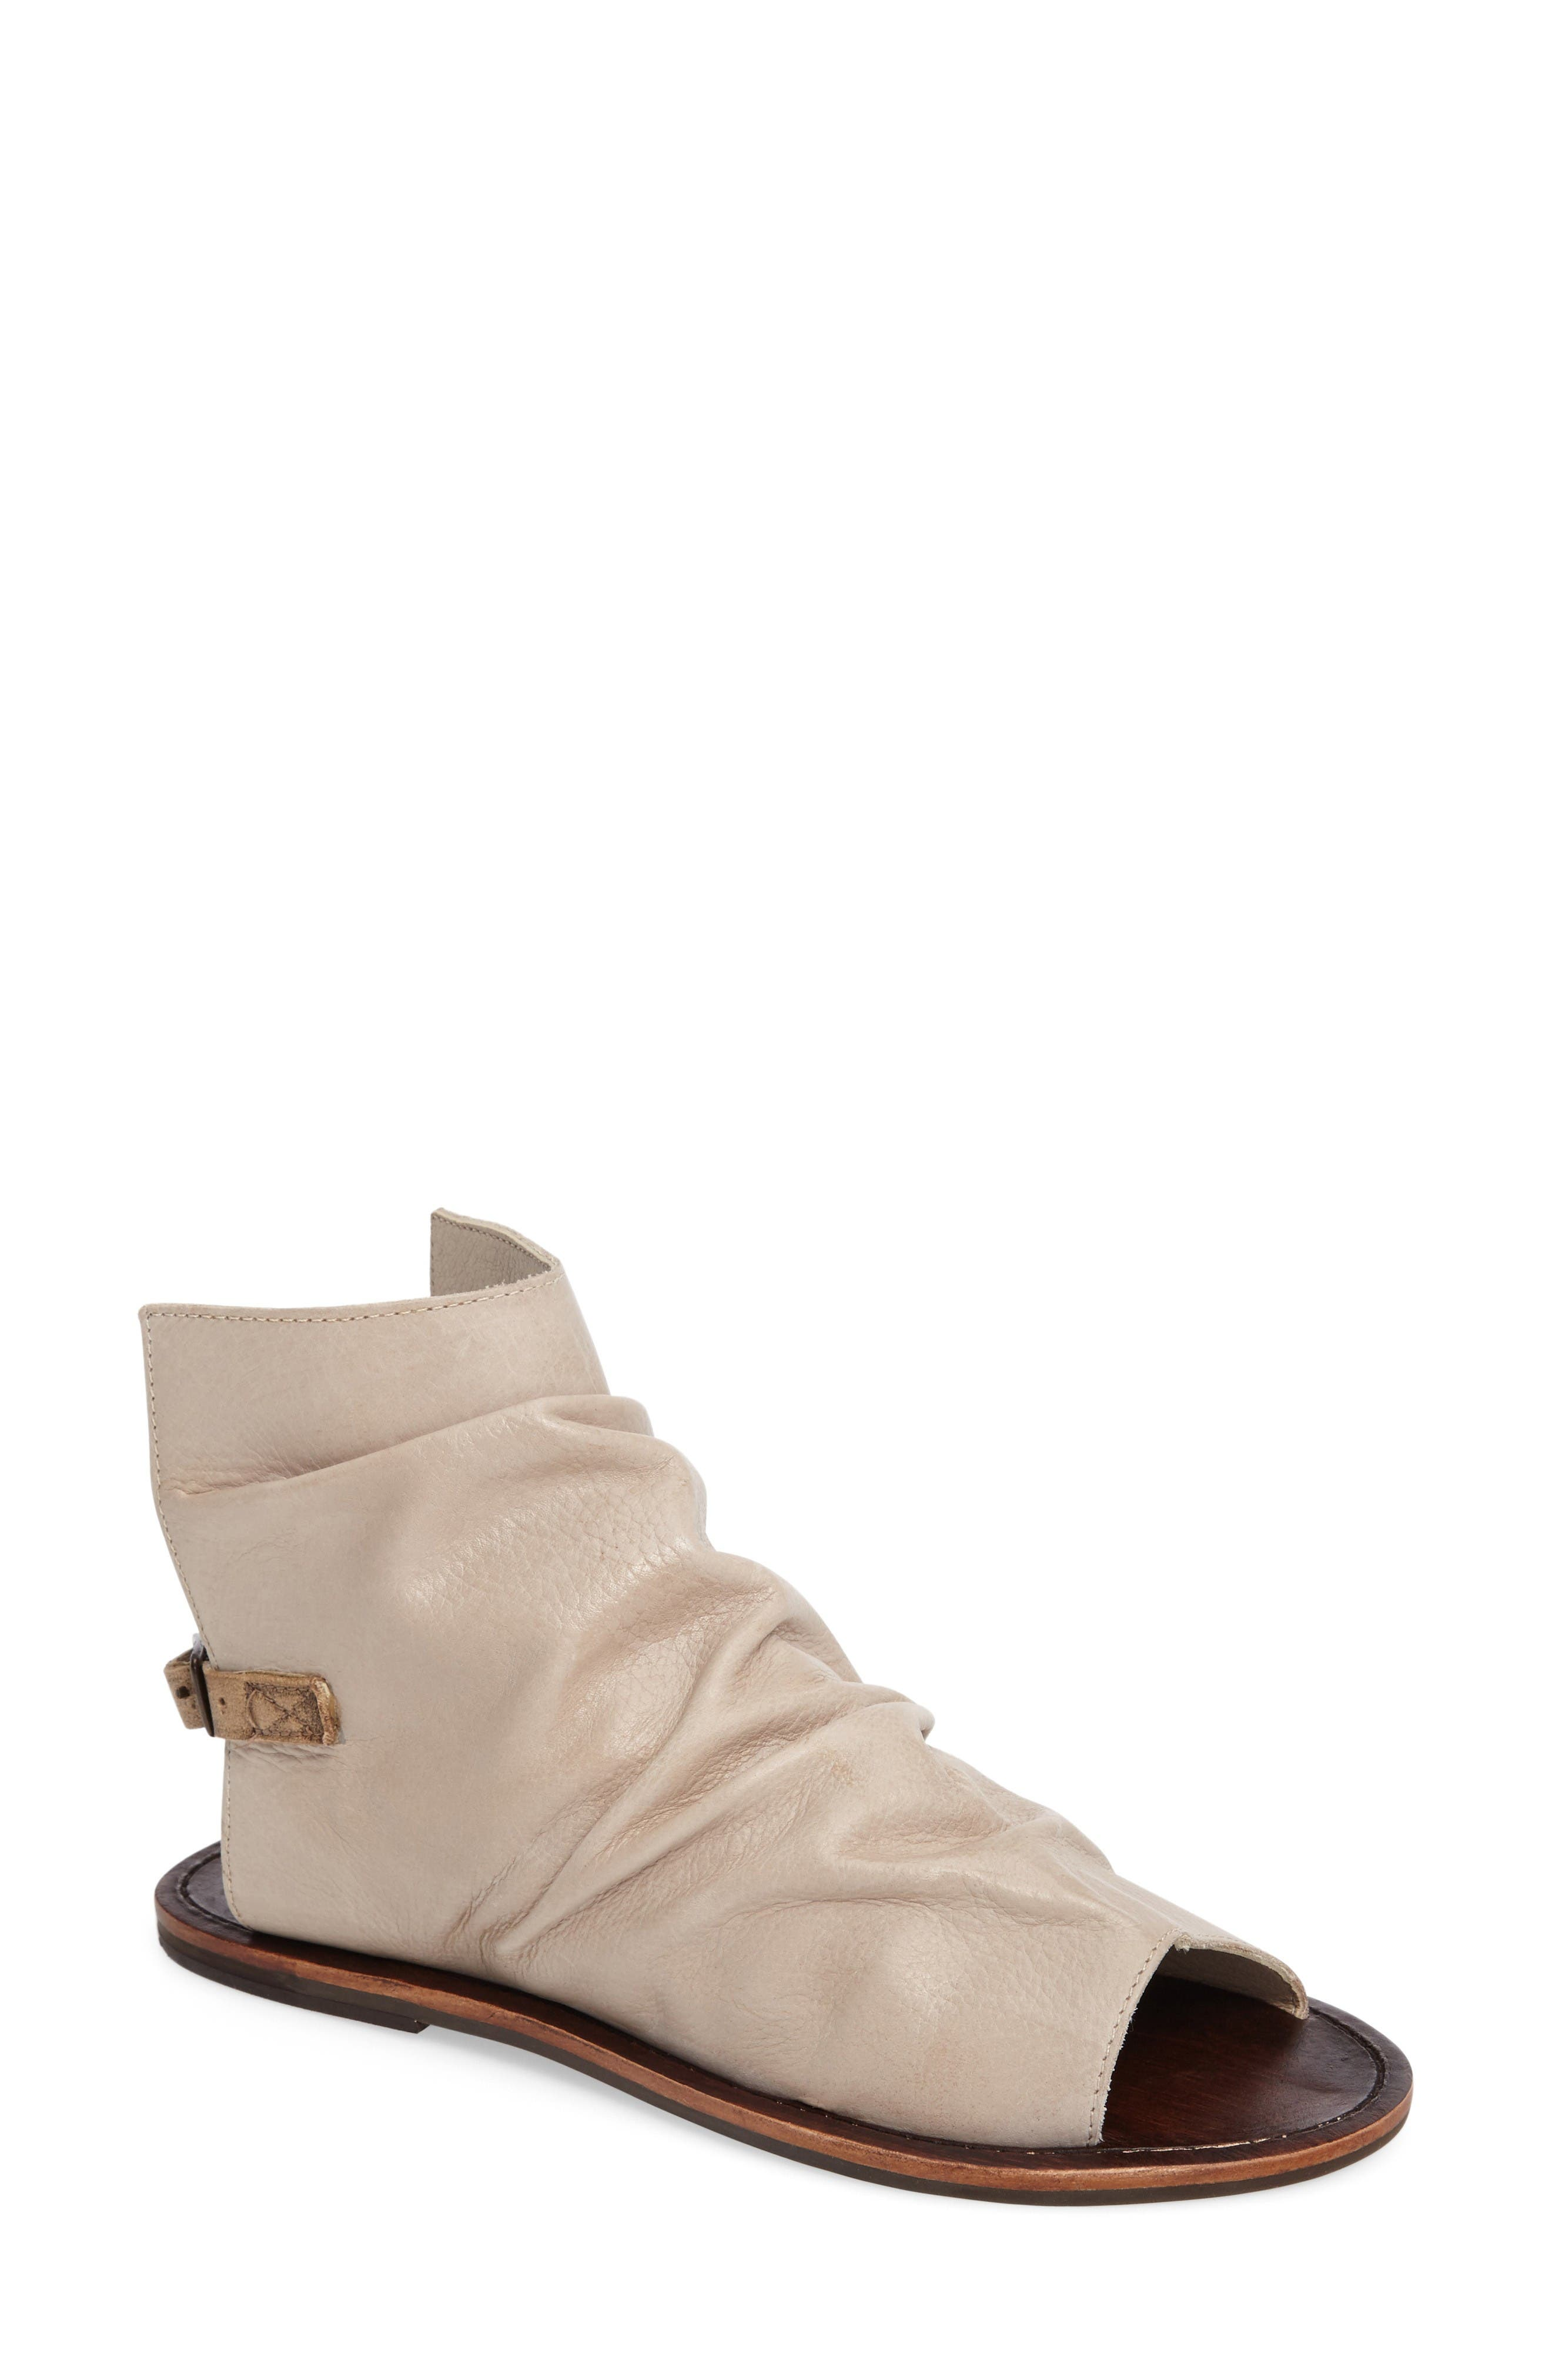 Wesley Slouchy Sandal,                             Main thumbnail 1, color,                             Taupe Leather